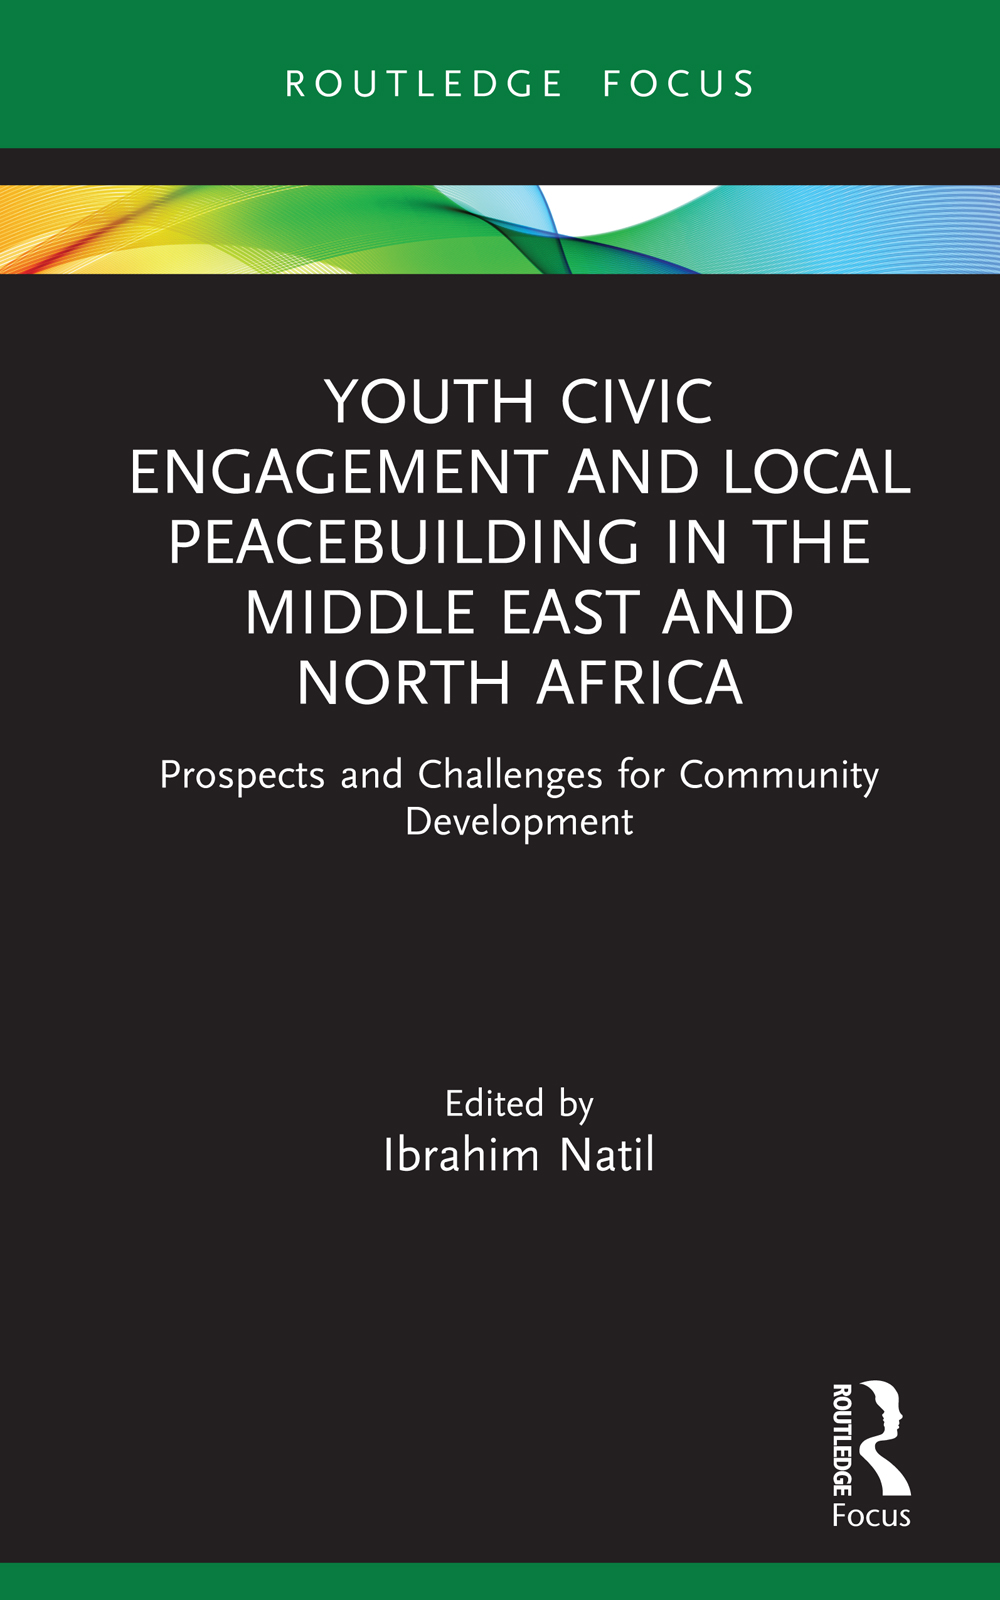 Youth Civic Engagement and Local Peacebuilding in the Middle East and North Africa